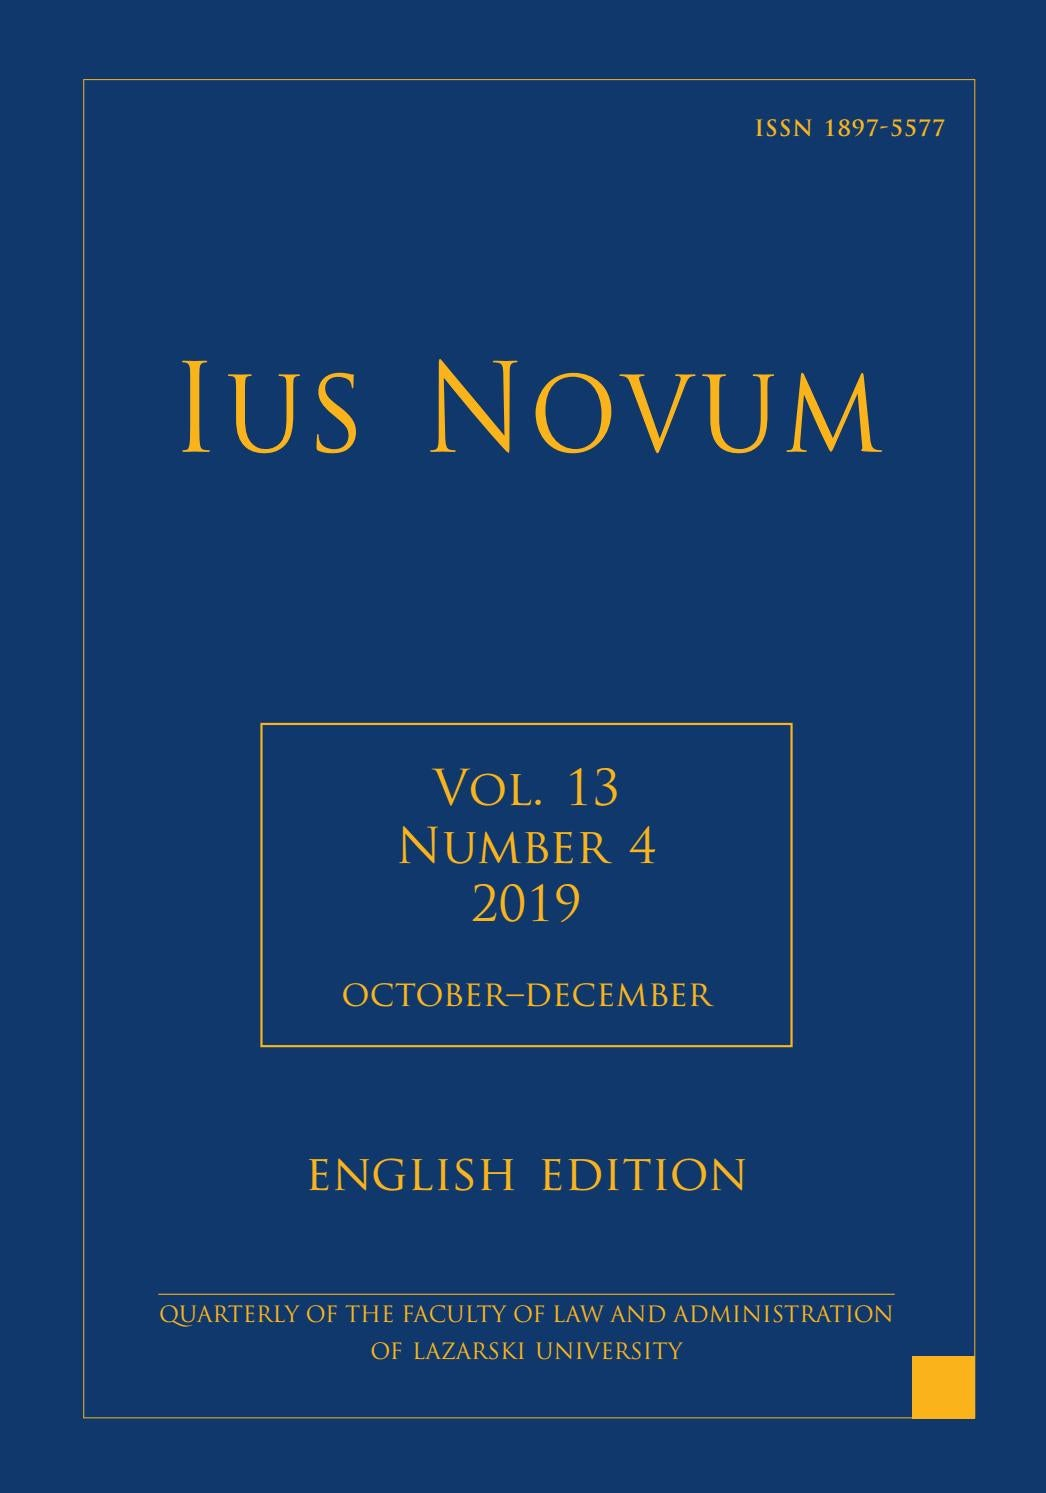 Ius Novum 4/2019 by Łazarski University Press - issuu